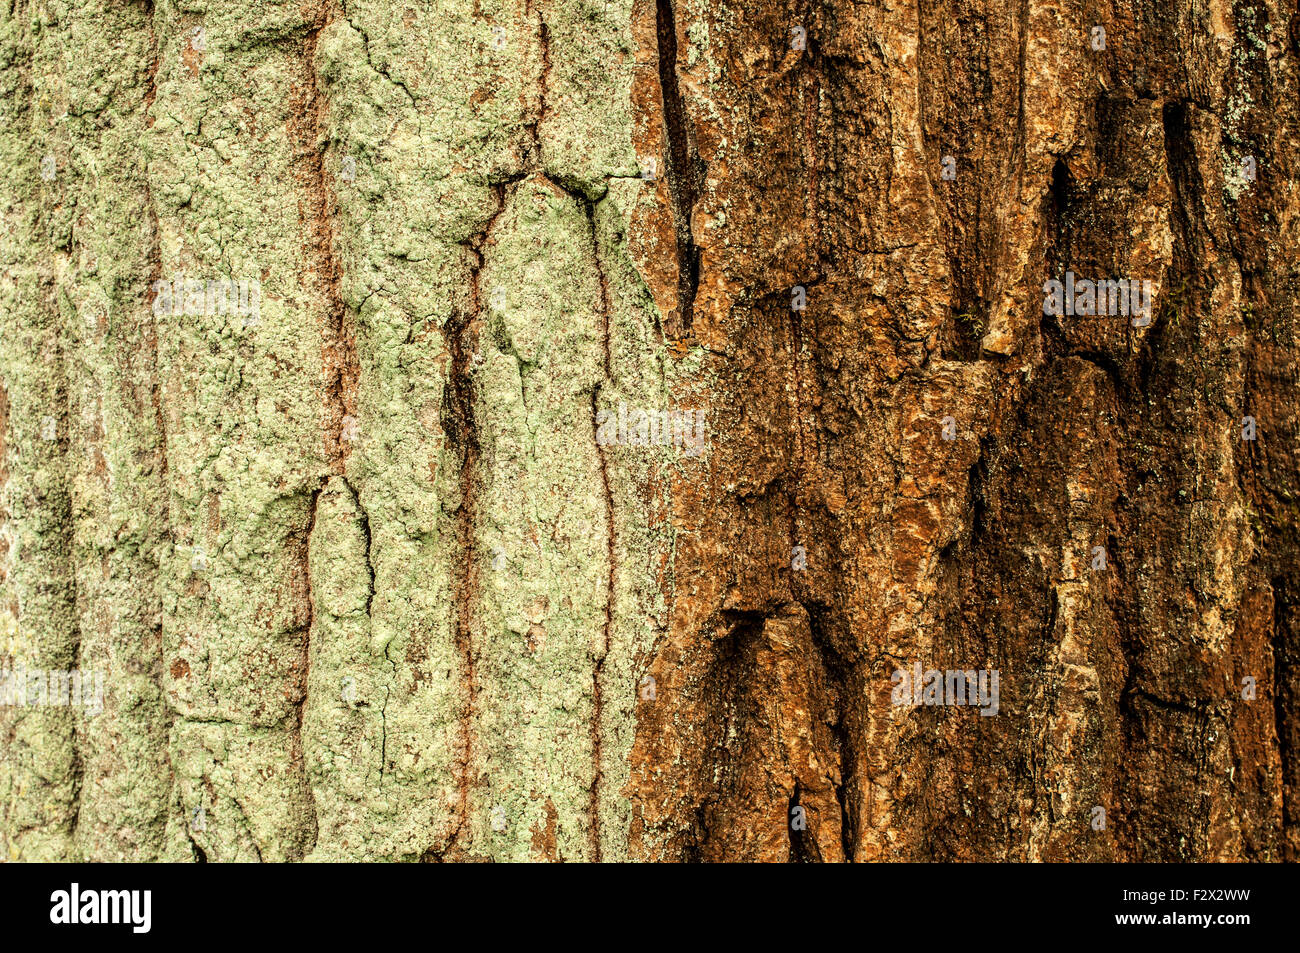 Bicolored tree-bark - green lichens on the left side Stock Photo